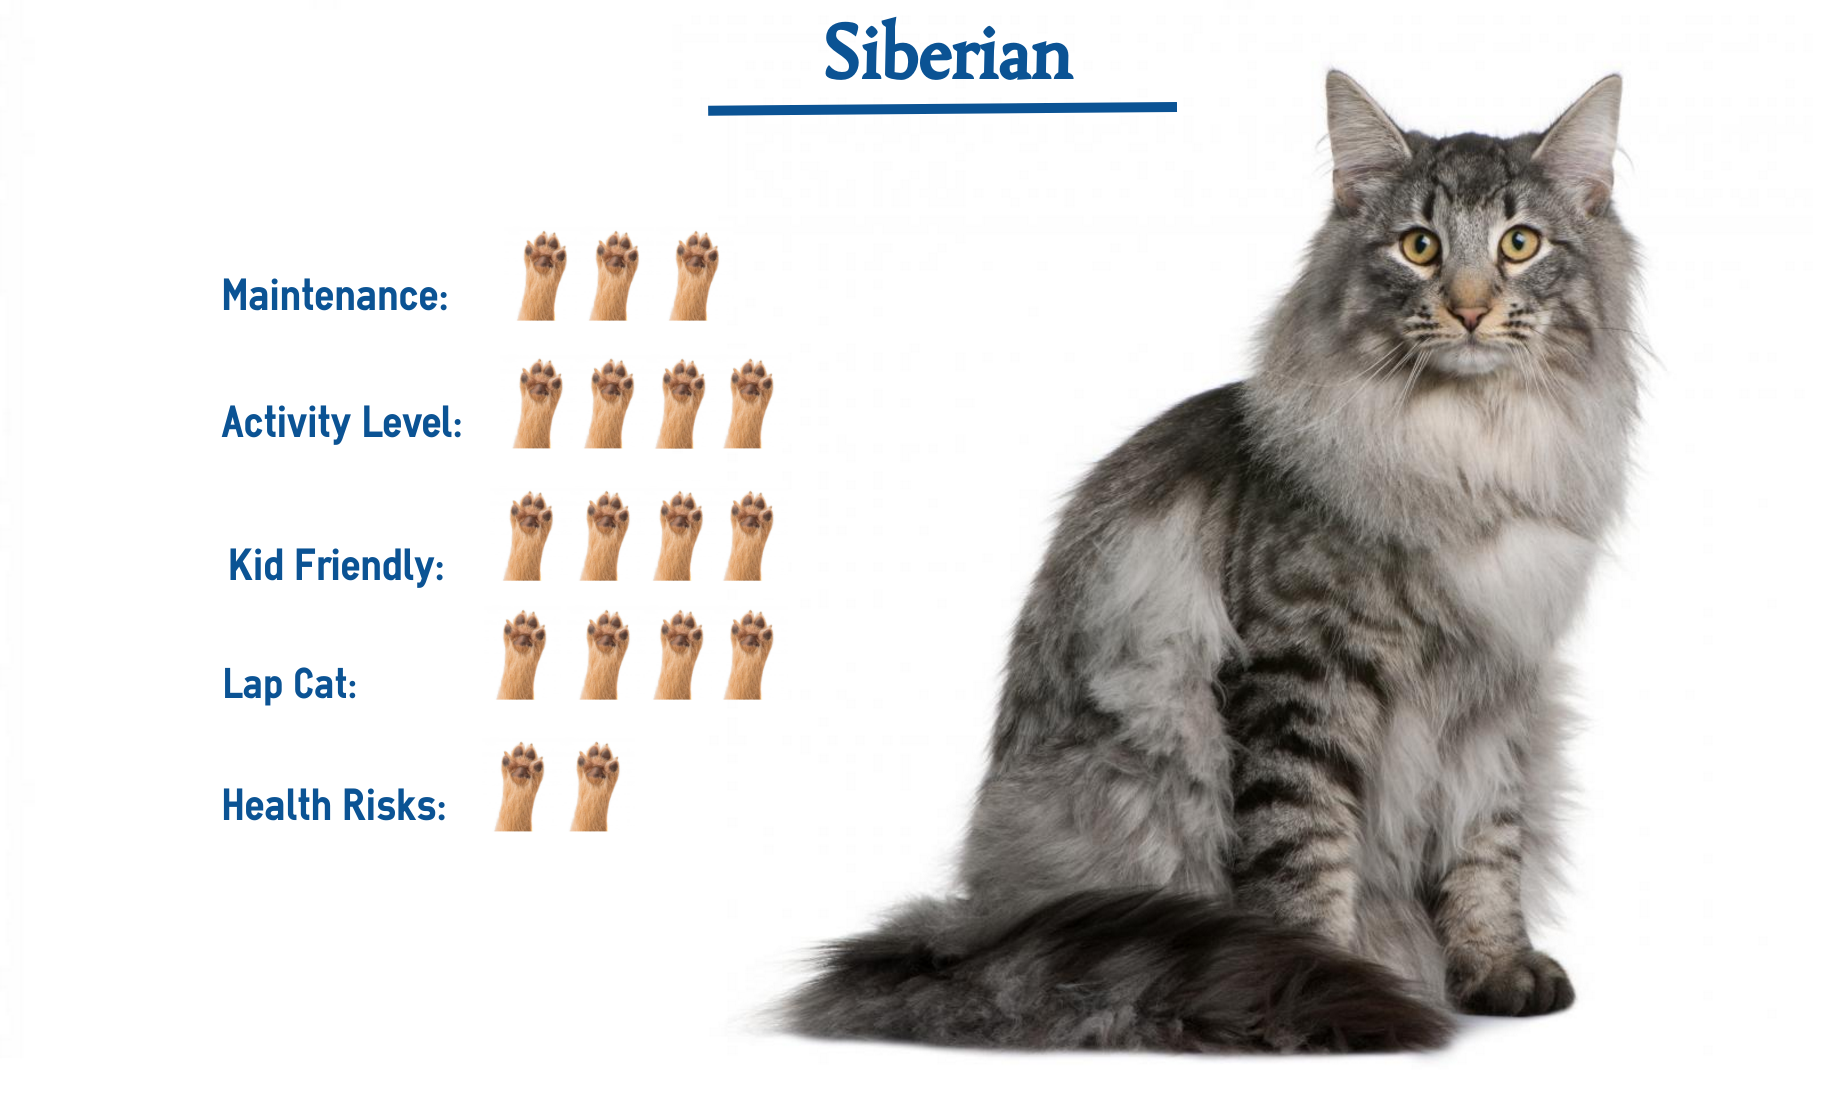 Siberian Cat Breed Cat Breeds Siberian Cats For Sale Siberian